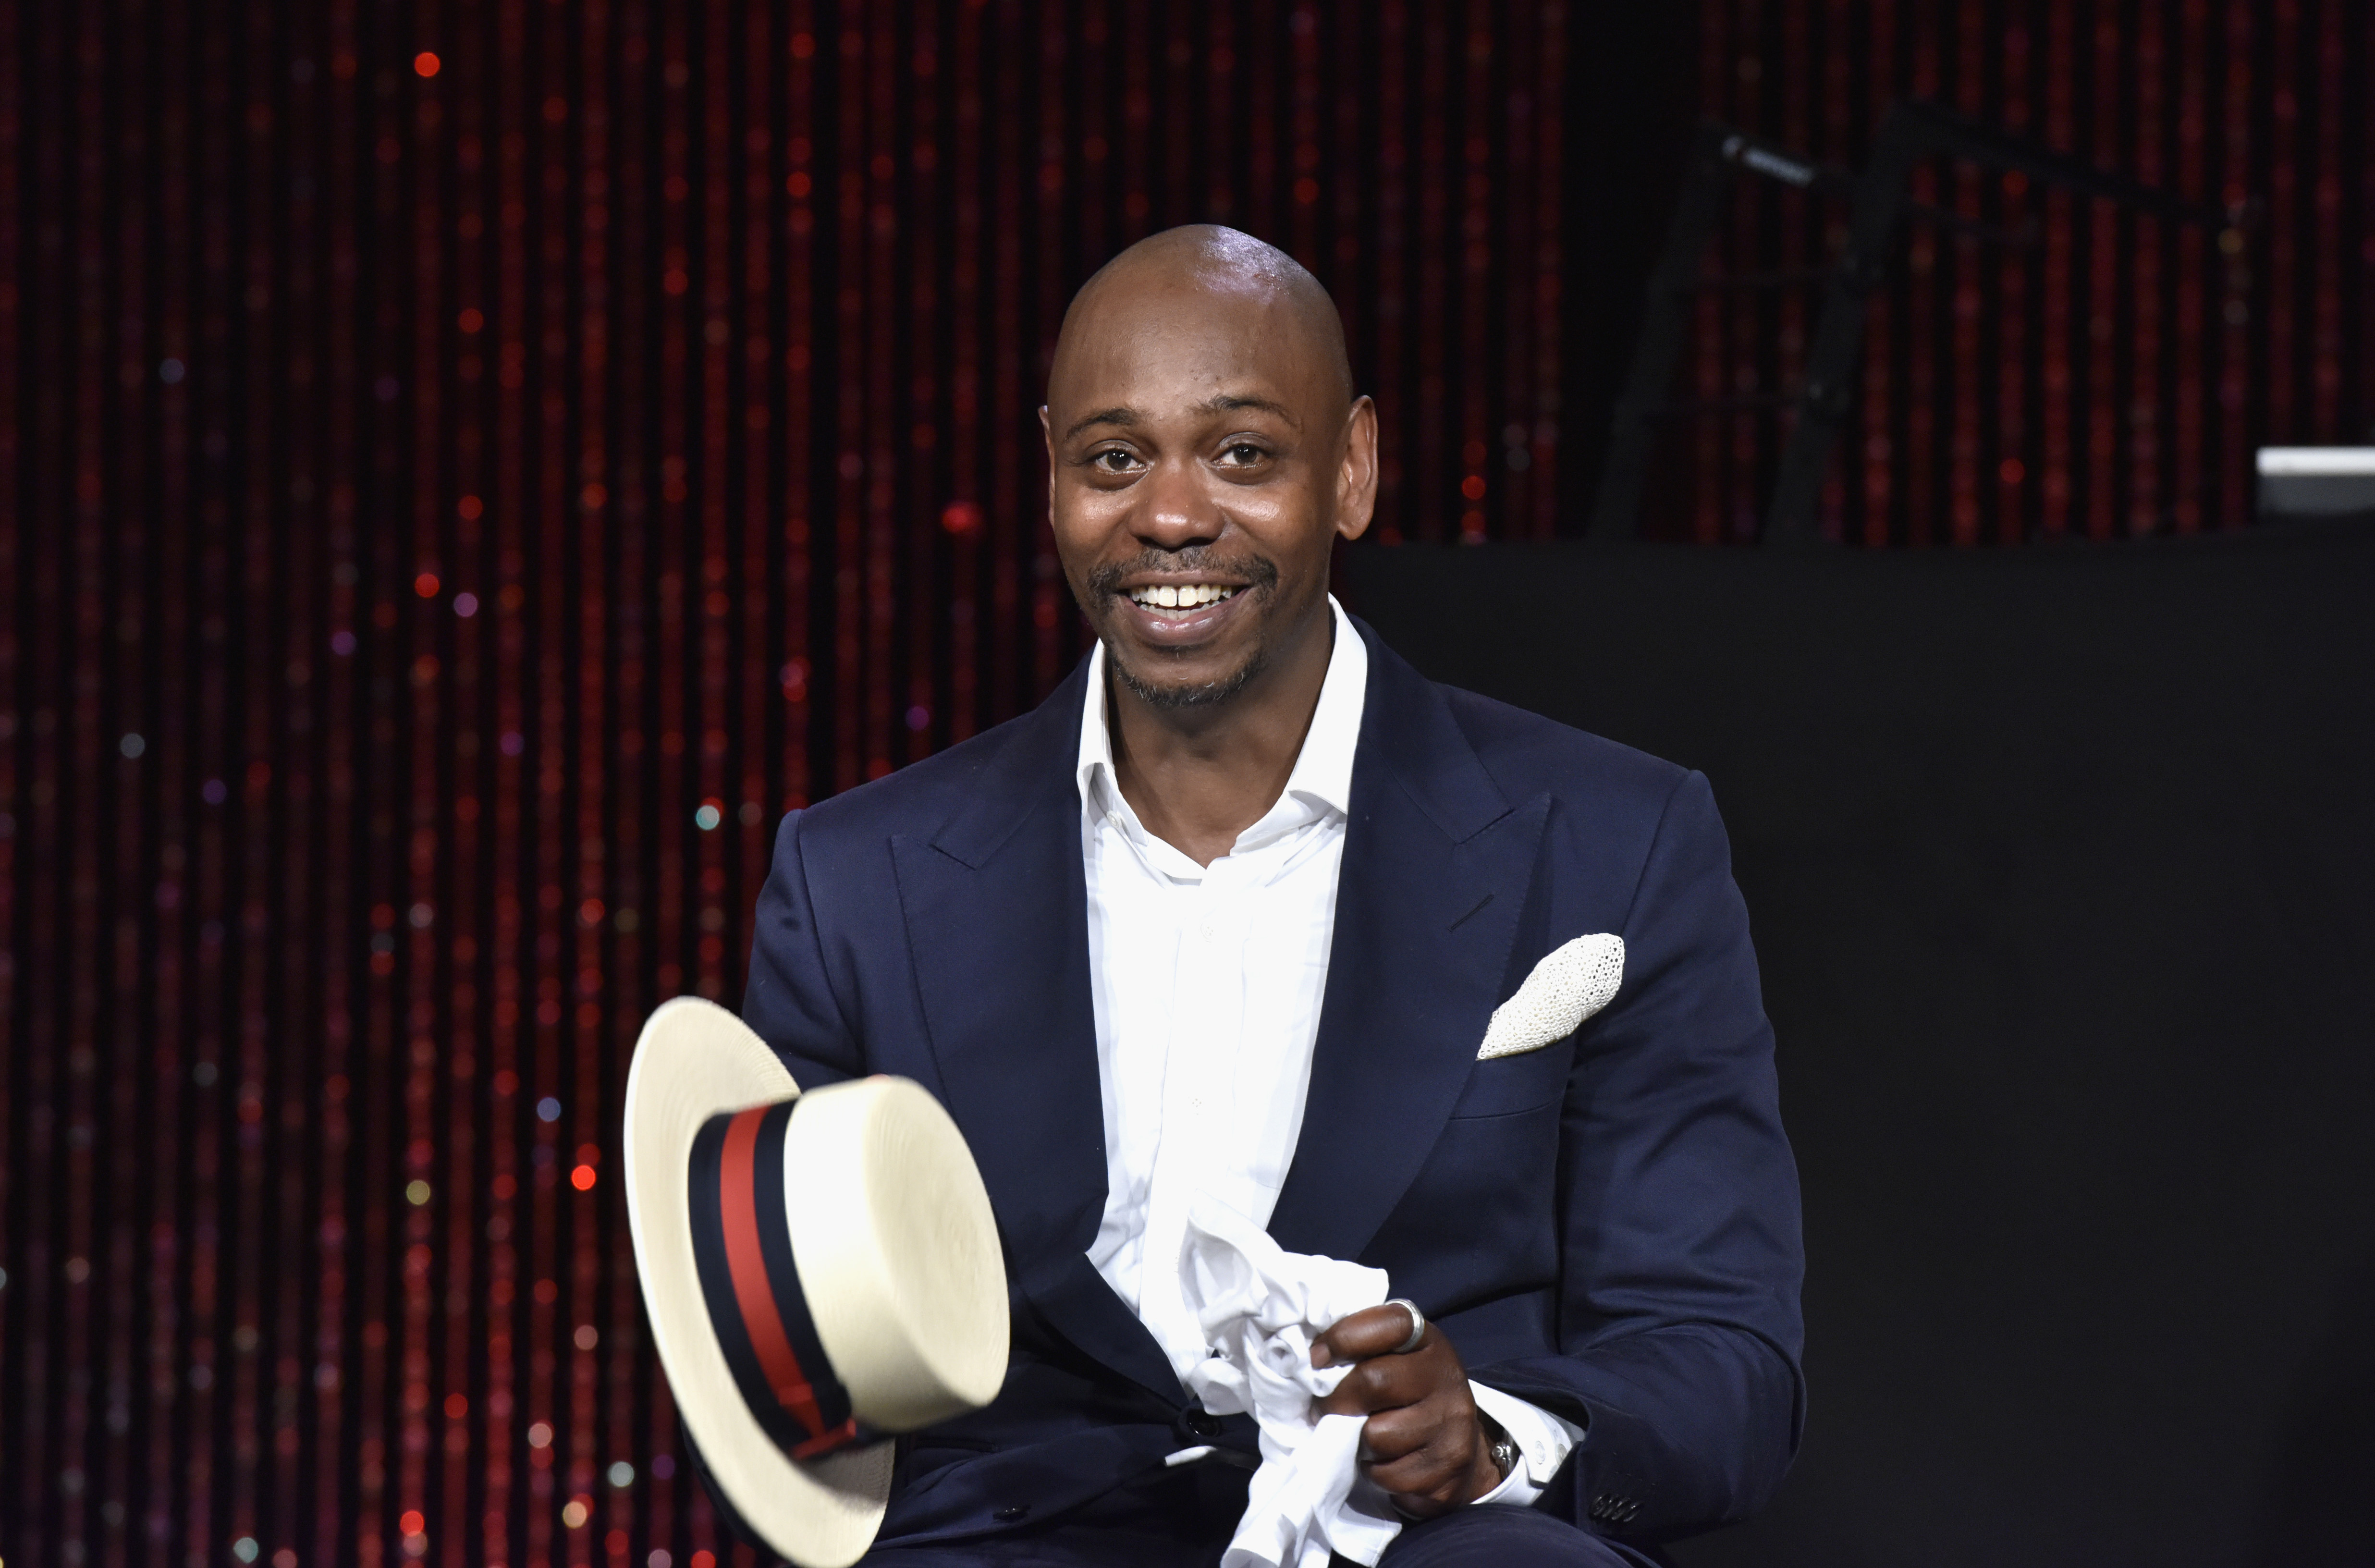 Report: Dave Chappelle Tests Postive For COVID-19